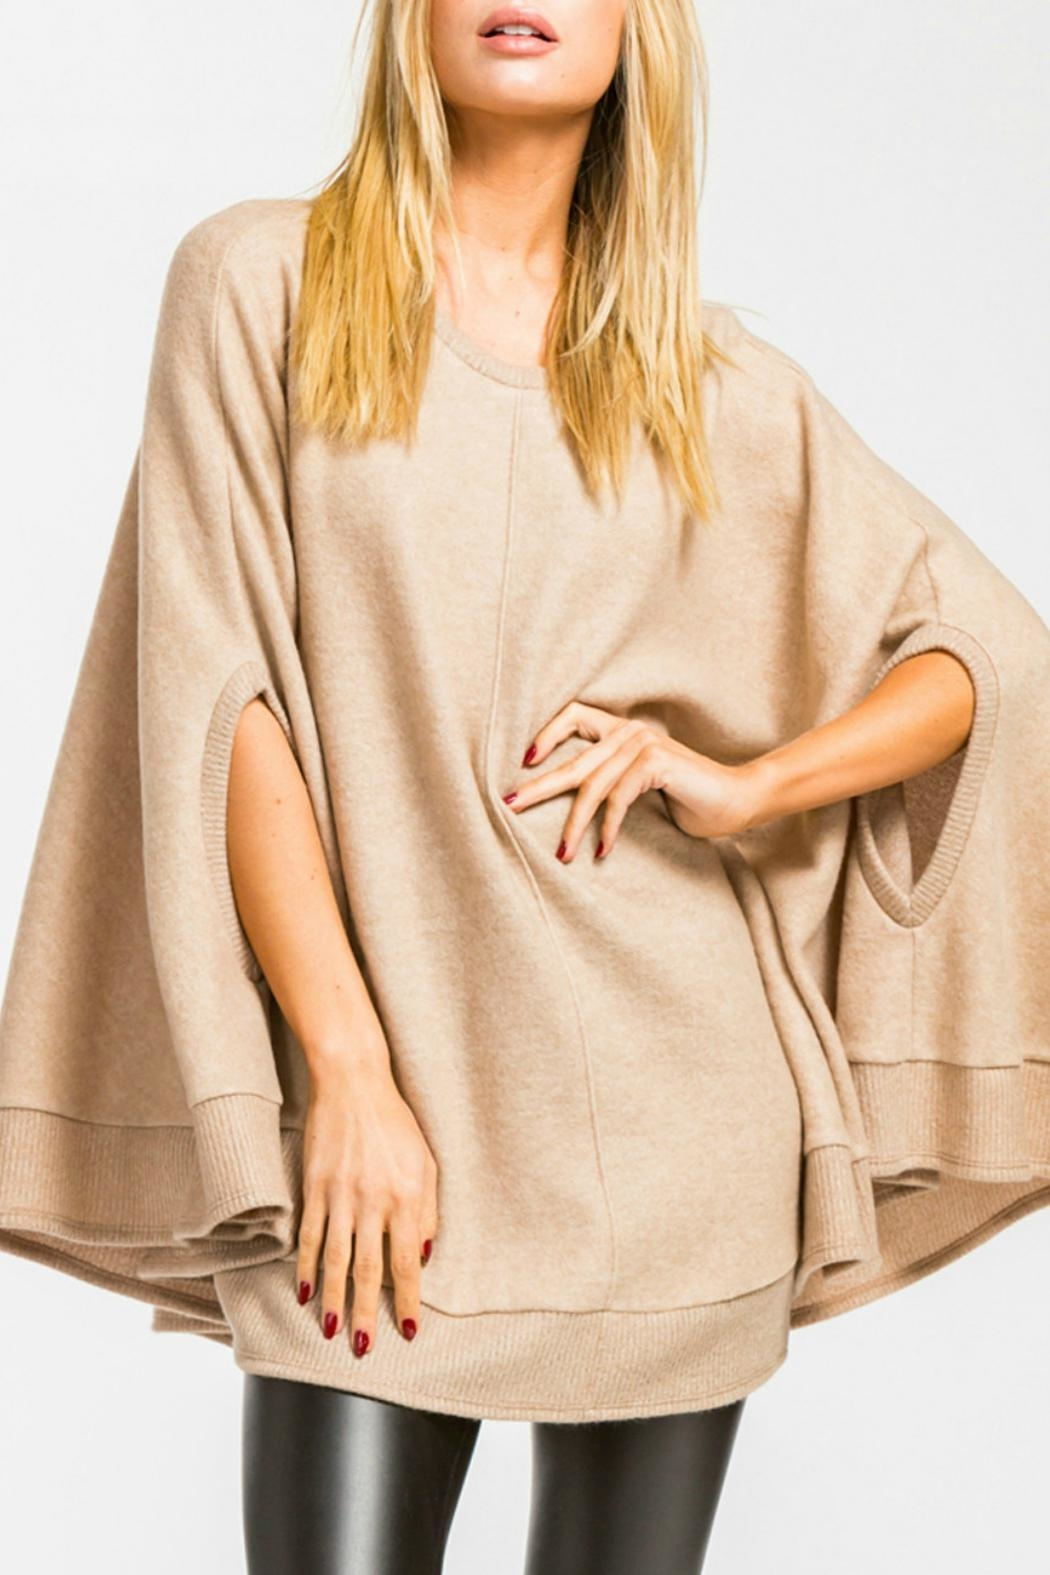 Cherish Taupe Poncho Sweater - Main Image